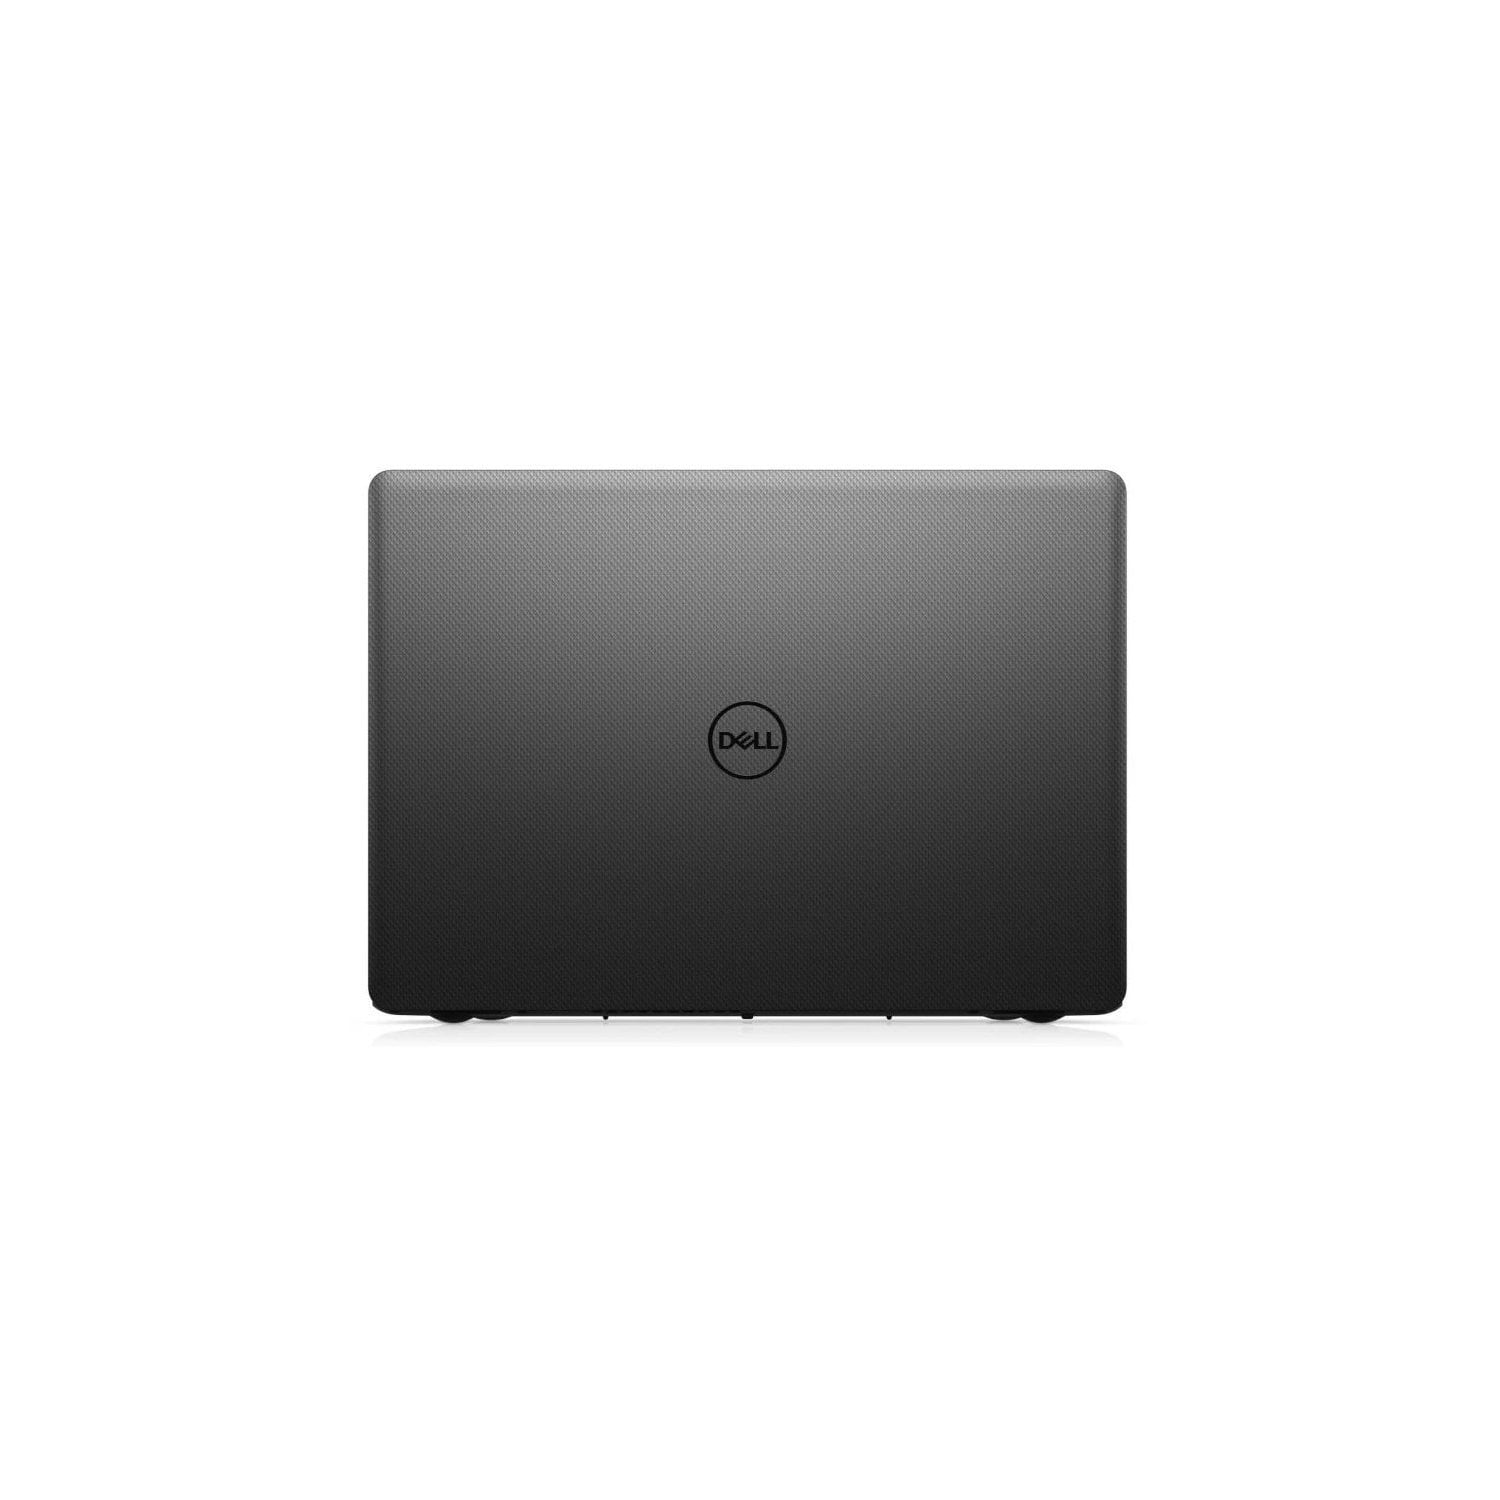 Laptop DELL Vostro 14 3490 i5-10210U/8GB/256GB SSD/INT/Win10Pro